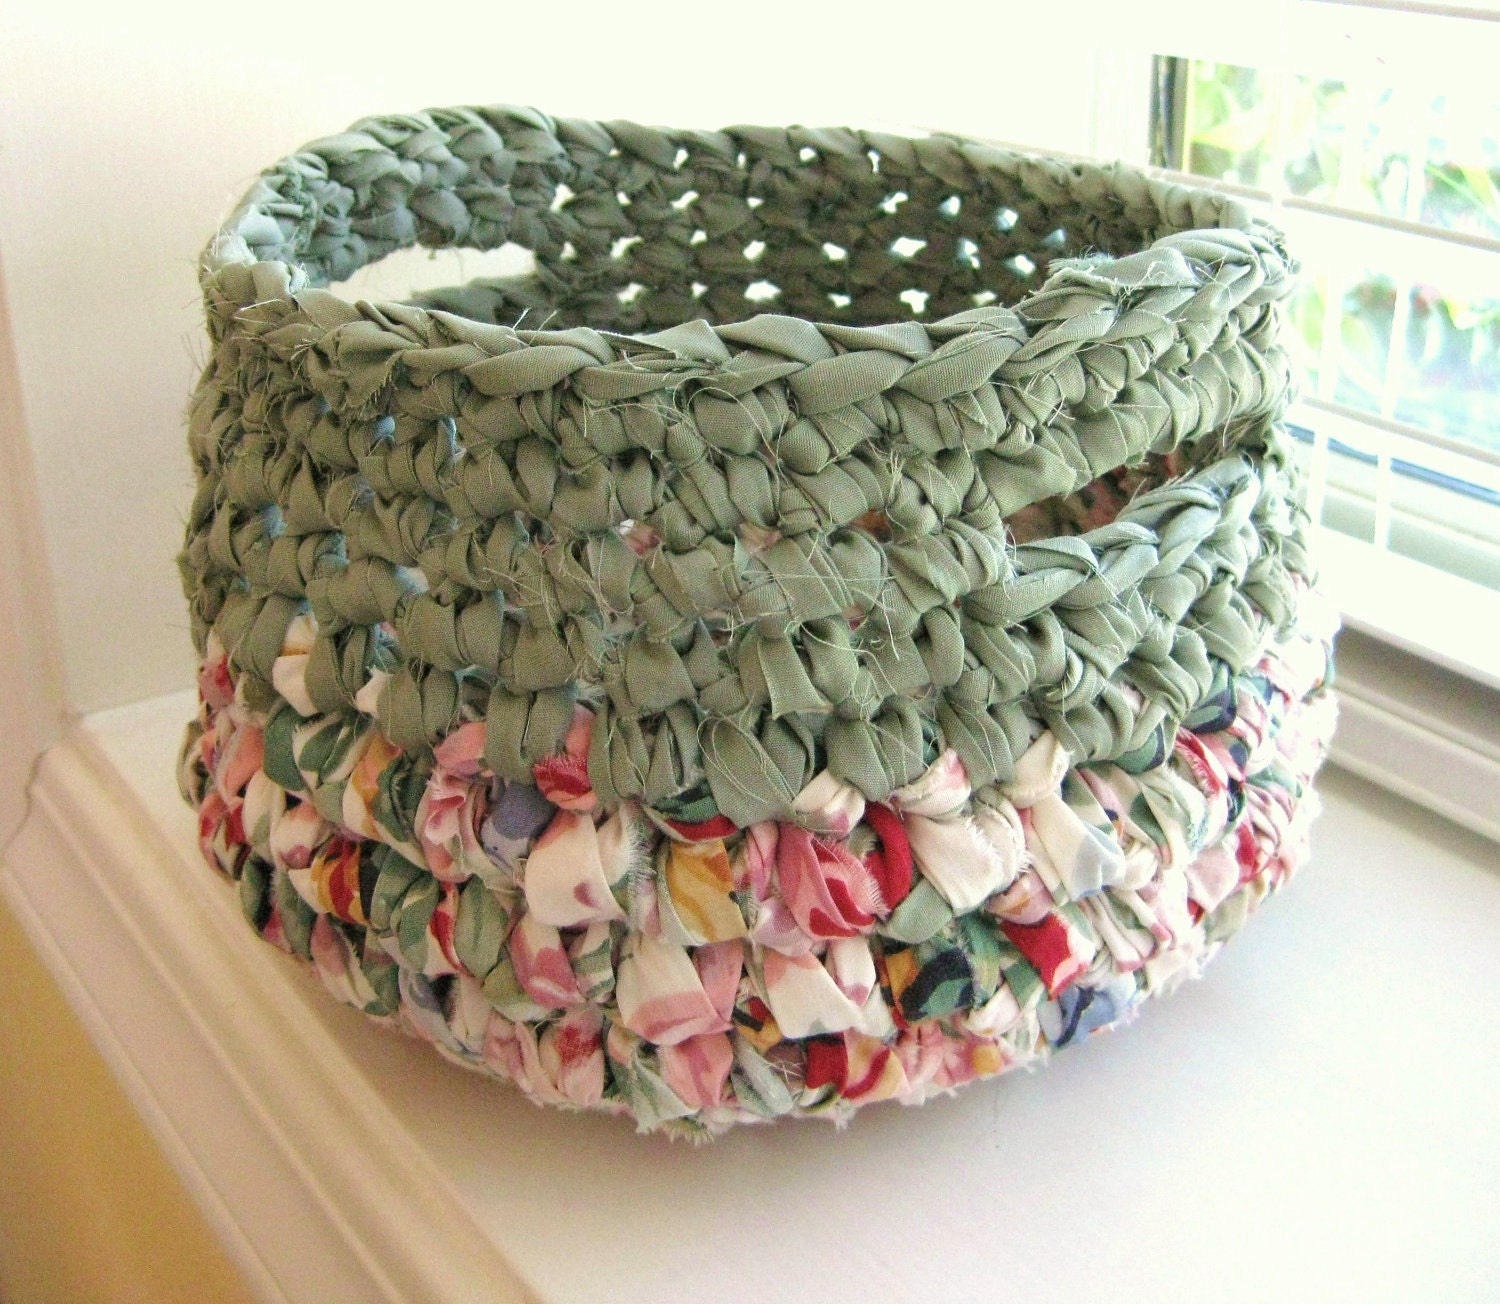 Crocheted Rag Basket Sage Green And Spring Colors-Repurposed